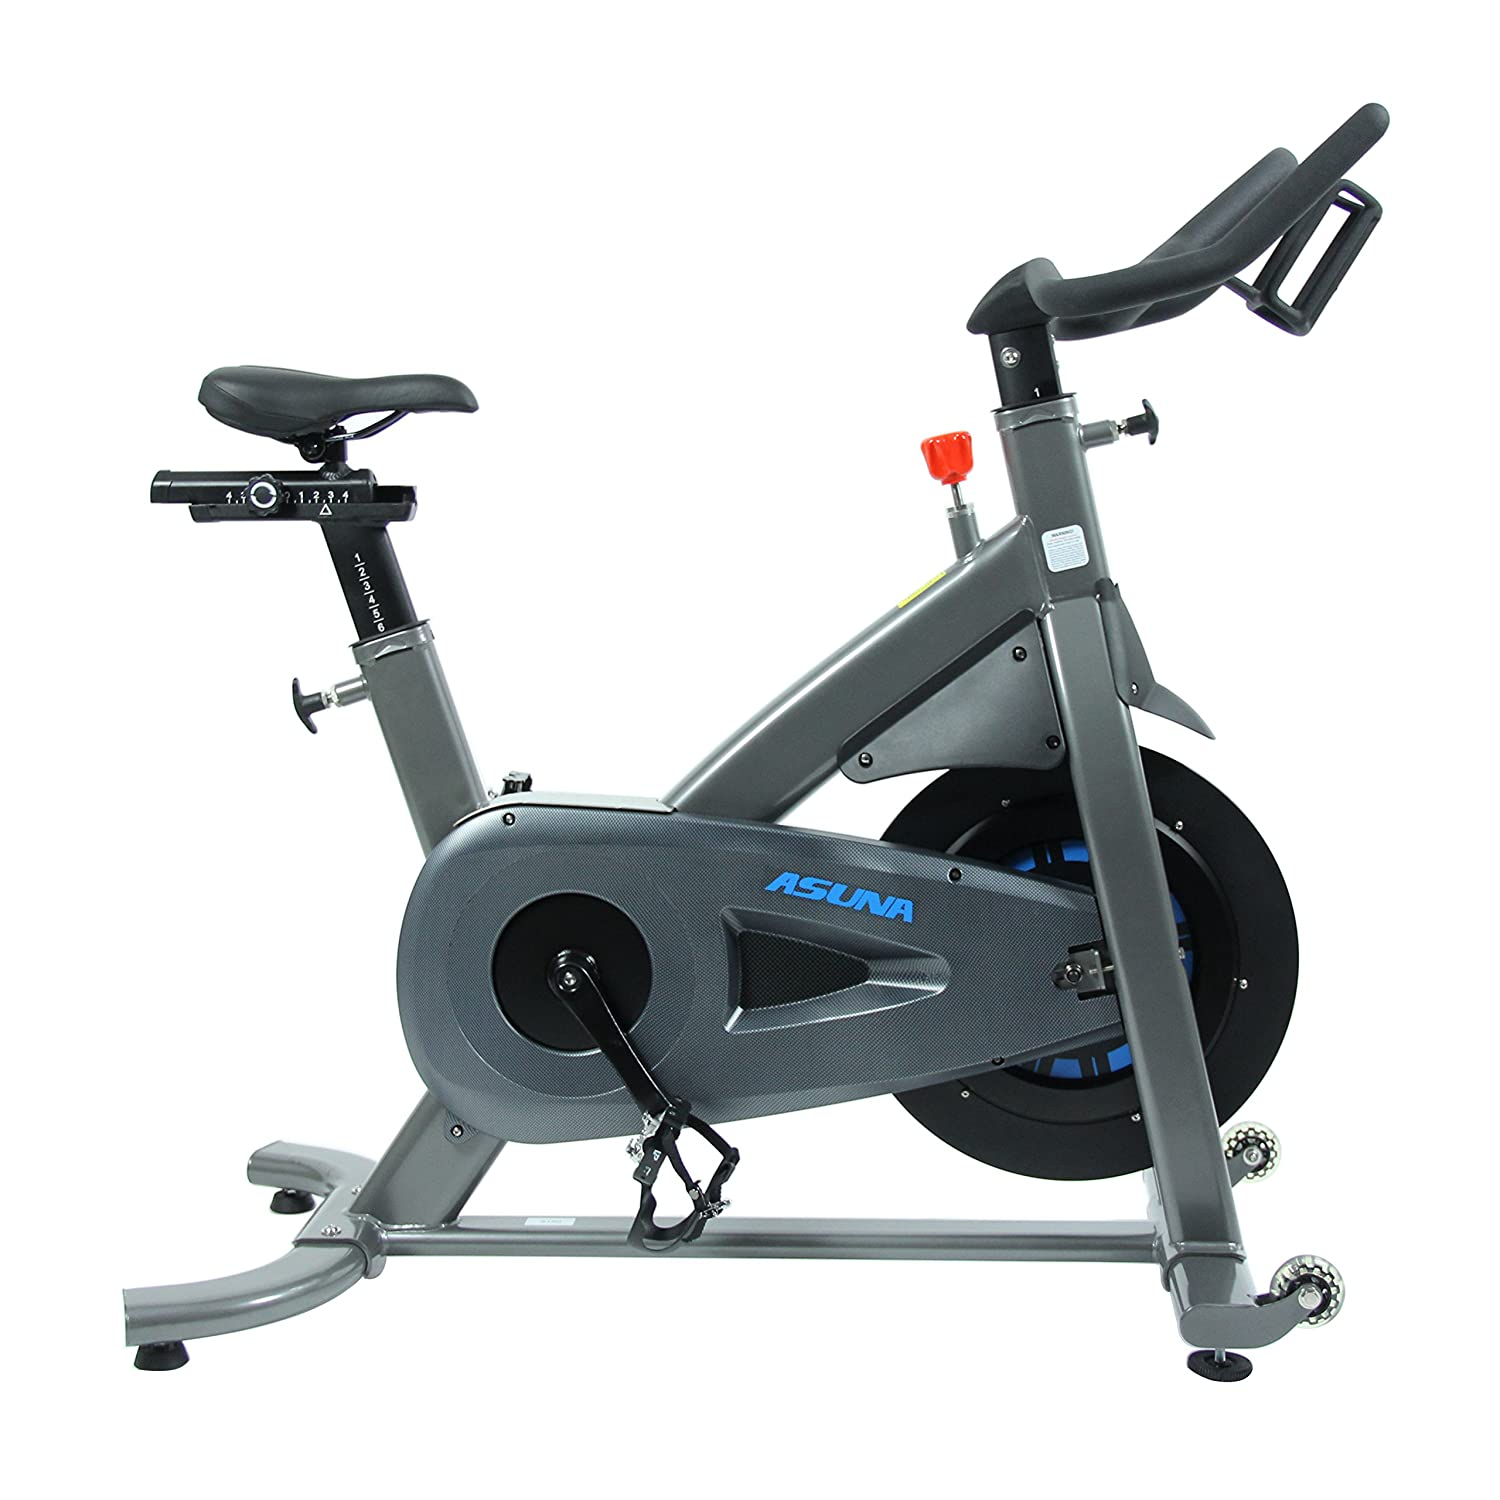 Asuna 5150 Magnetic Turbo Commercial Indoor Cycling